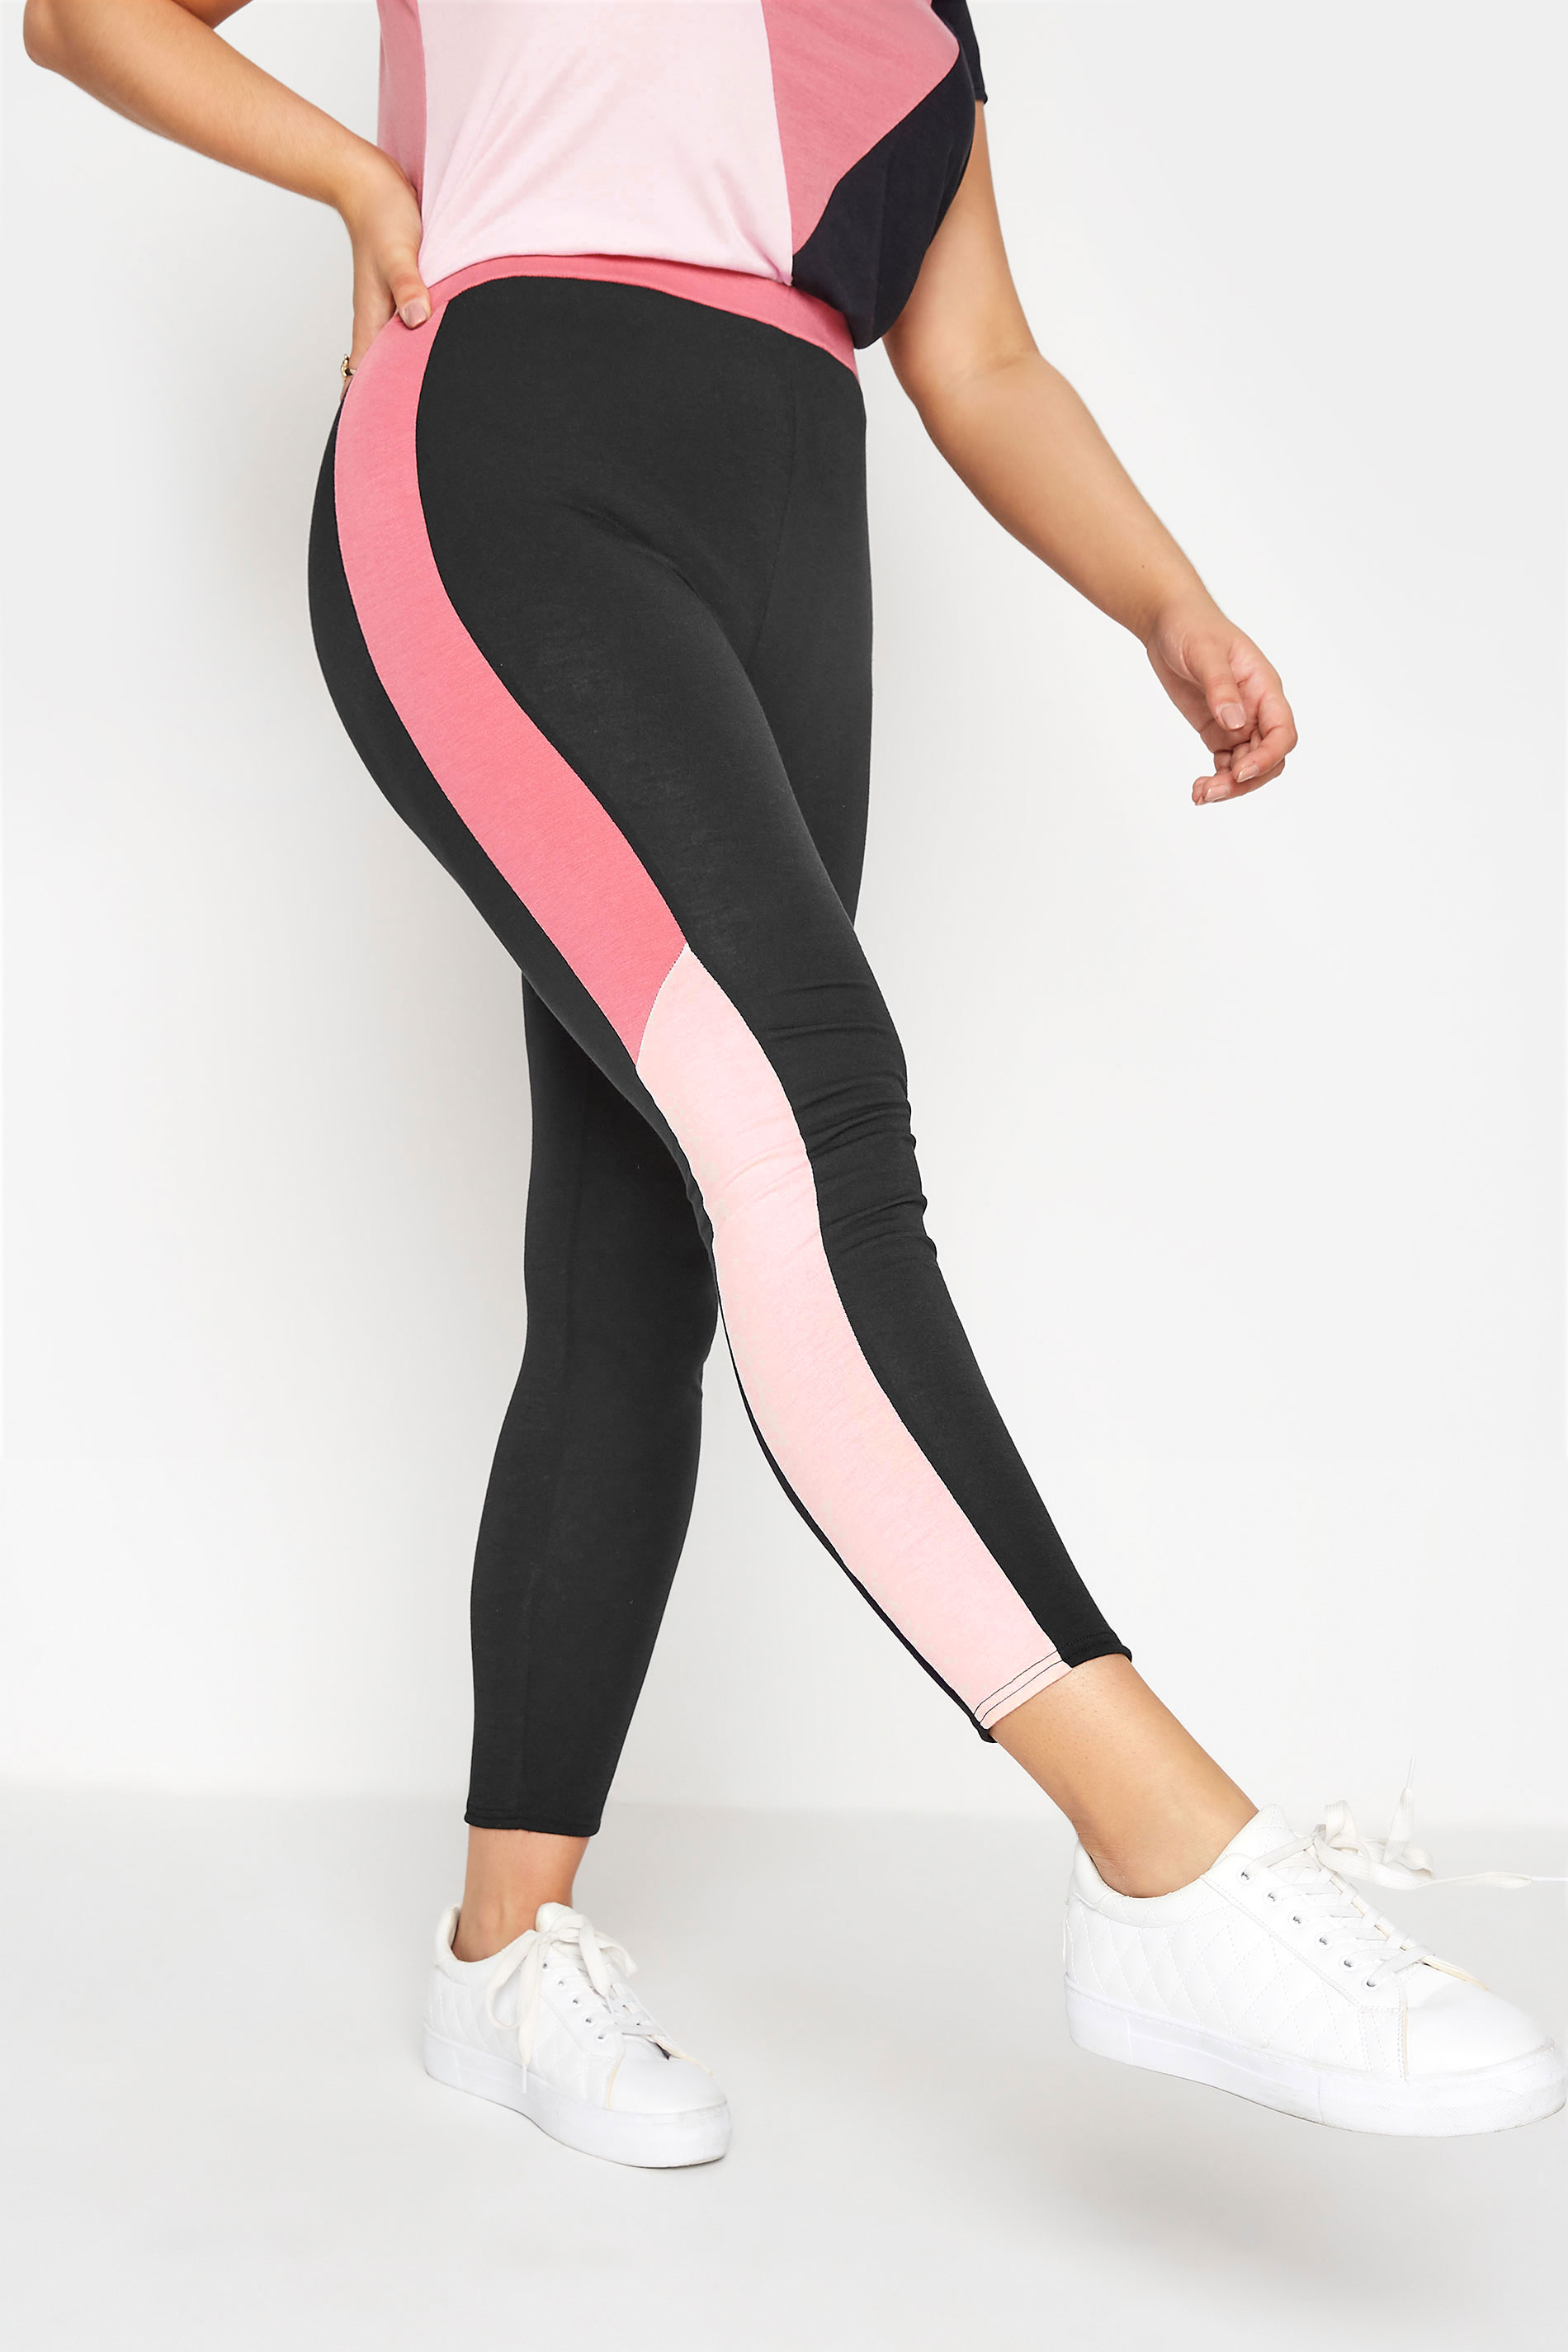 LIMITED COLLECTION Black & Pink Colour Block Leggings_B.jpg